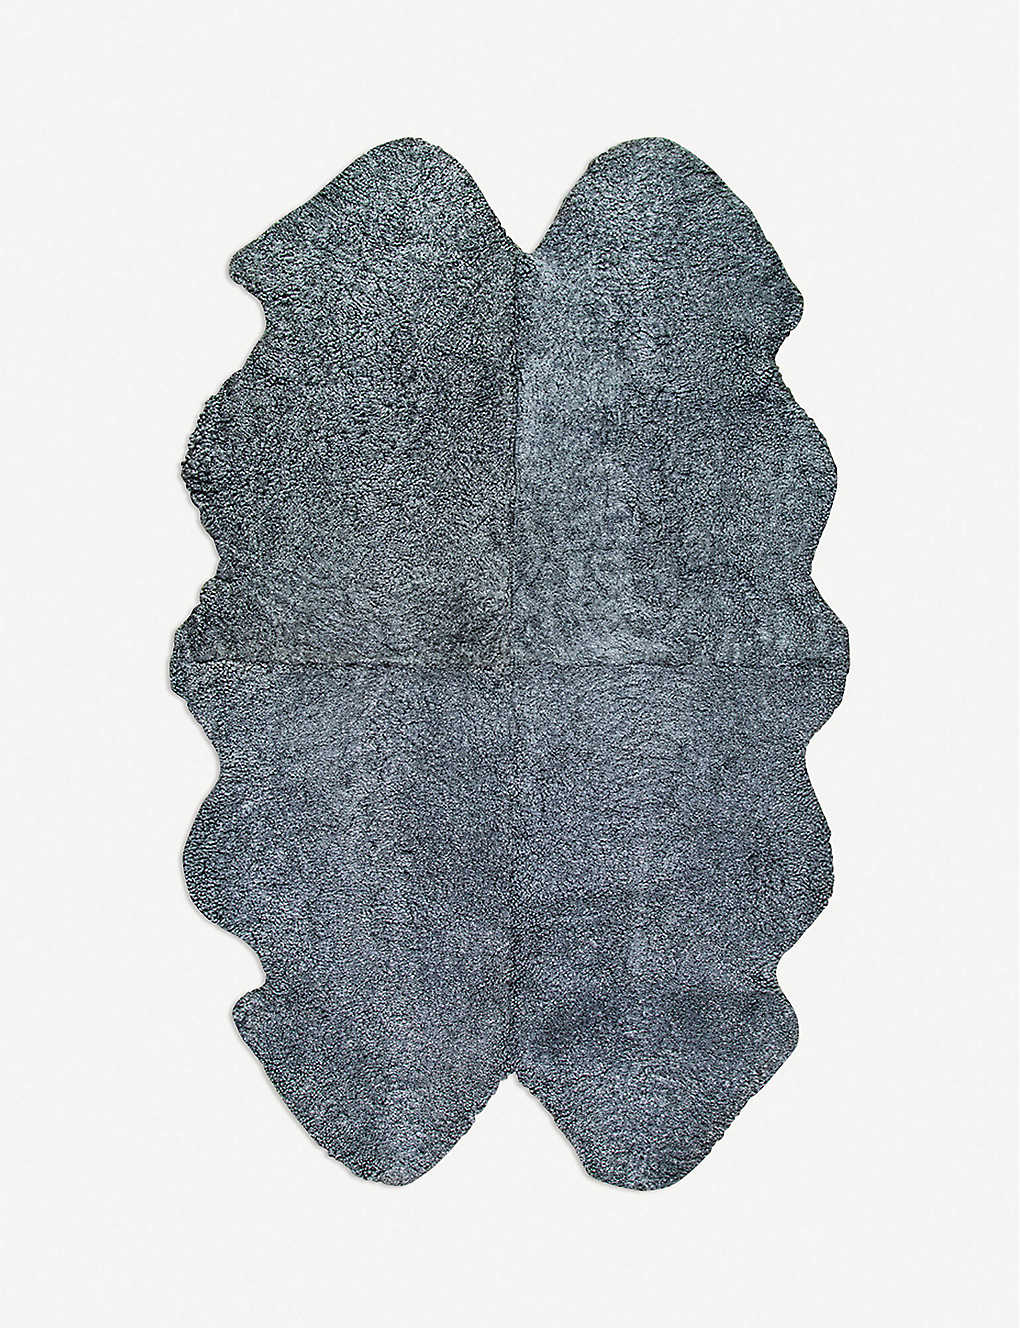 THE CONRAN SHOP: New Zealand sheepskin rug 110cm x 180m